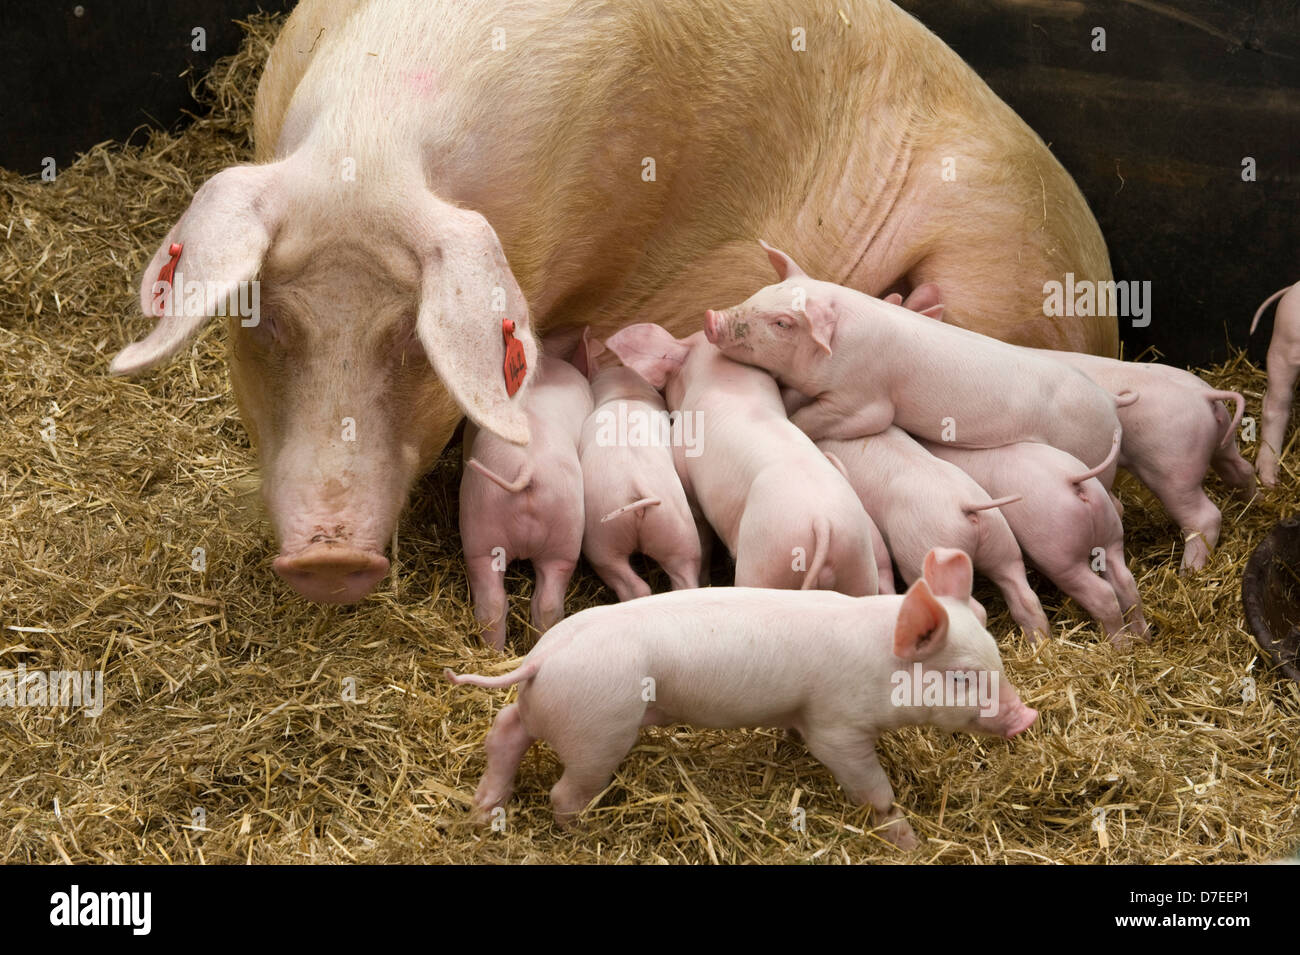 piglets-suckling-on-a-sow-exeter-festival-of-south-west-food-drink-D7EEP1.jpg